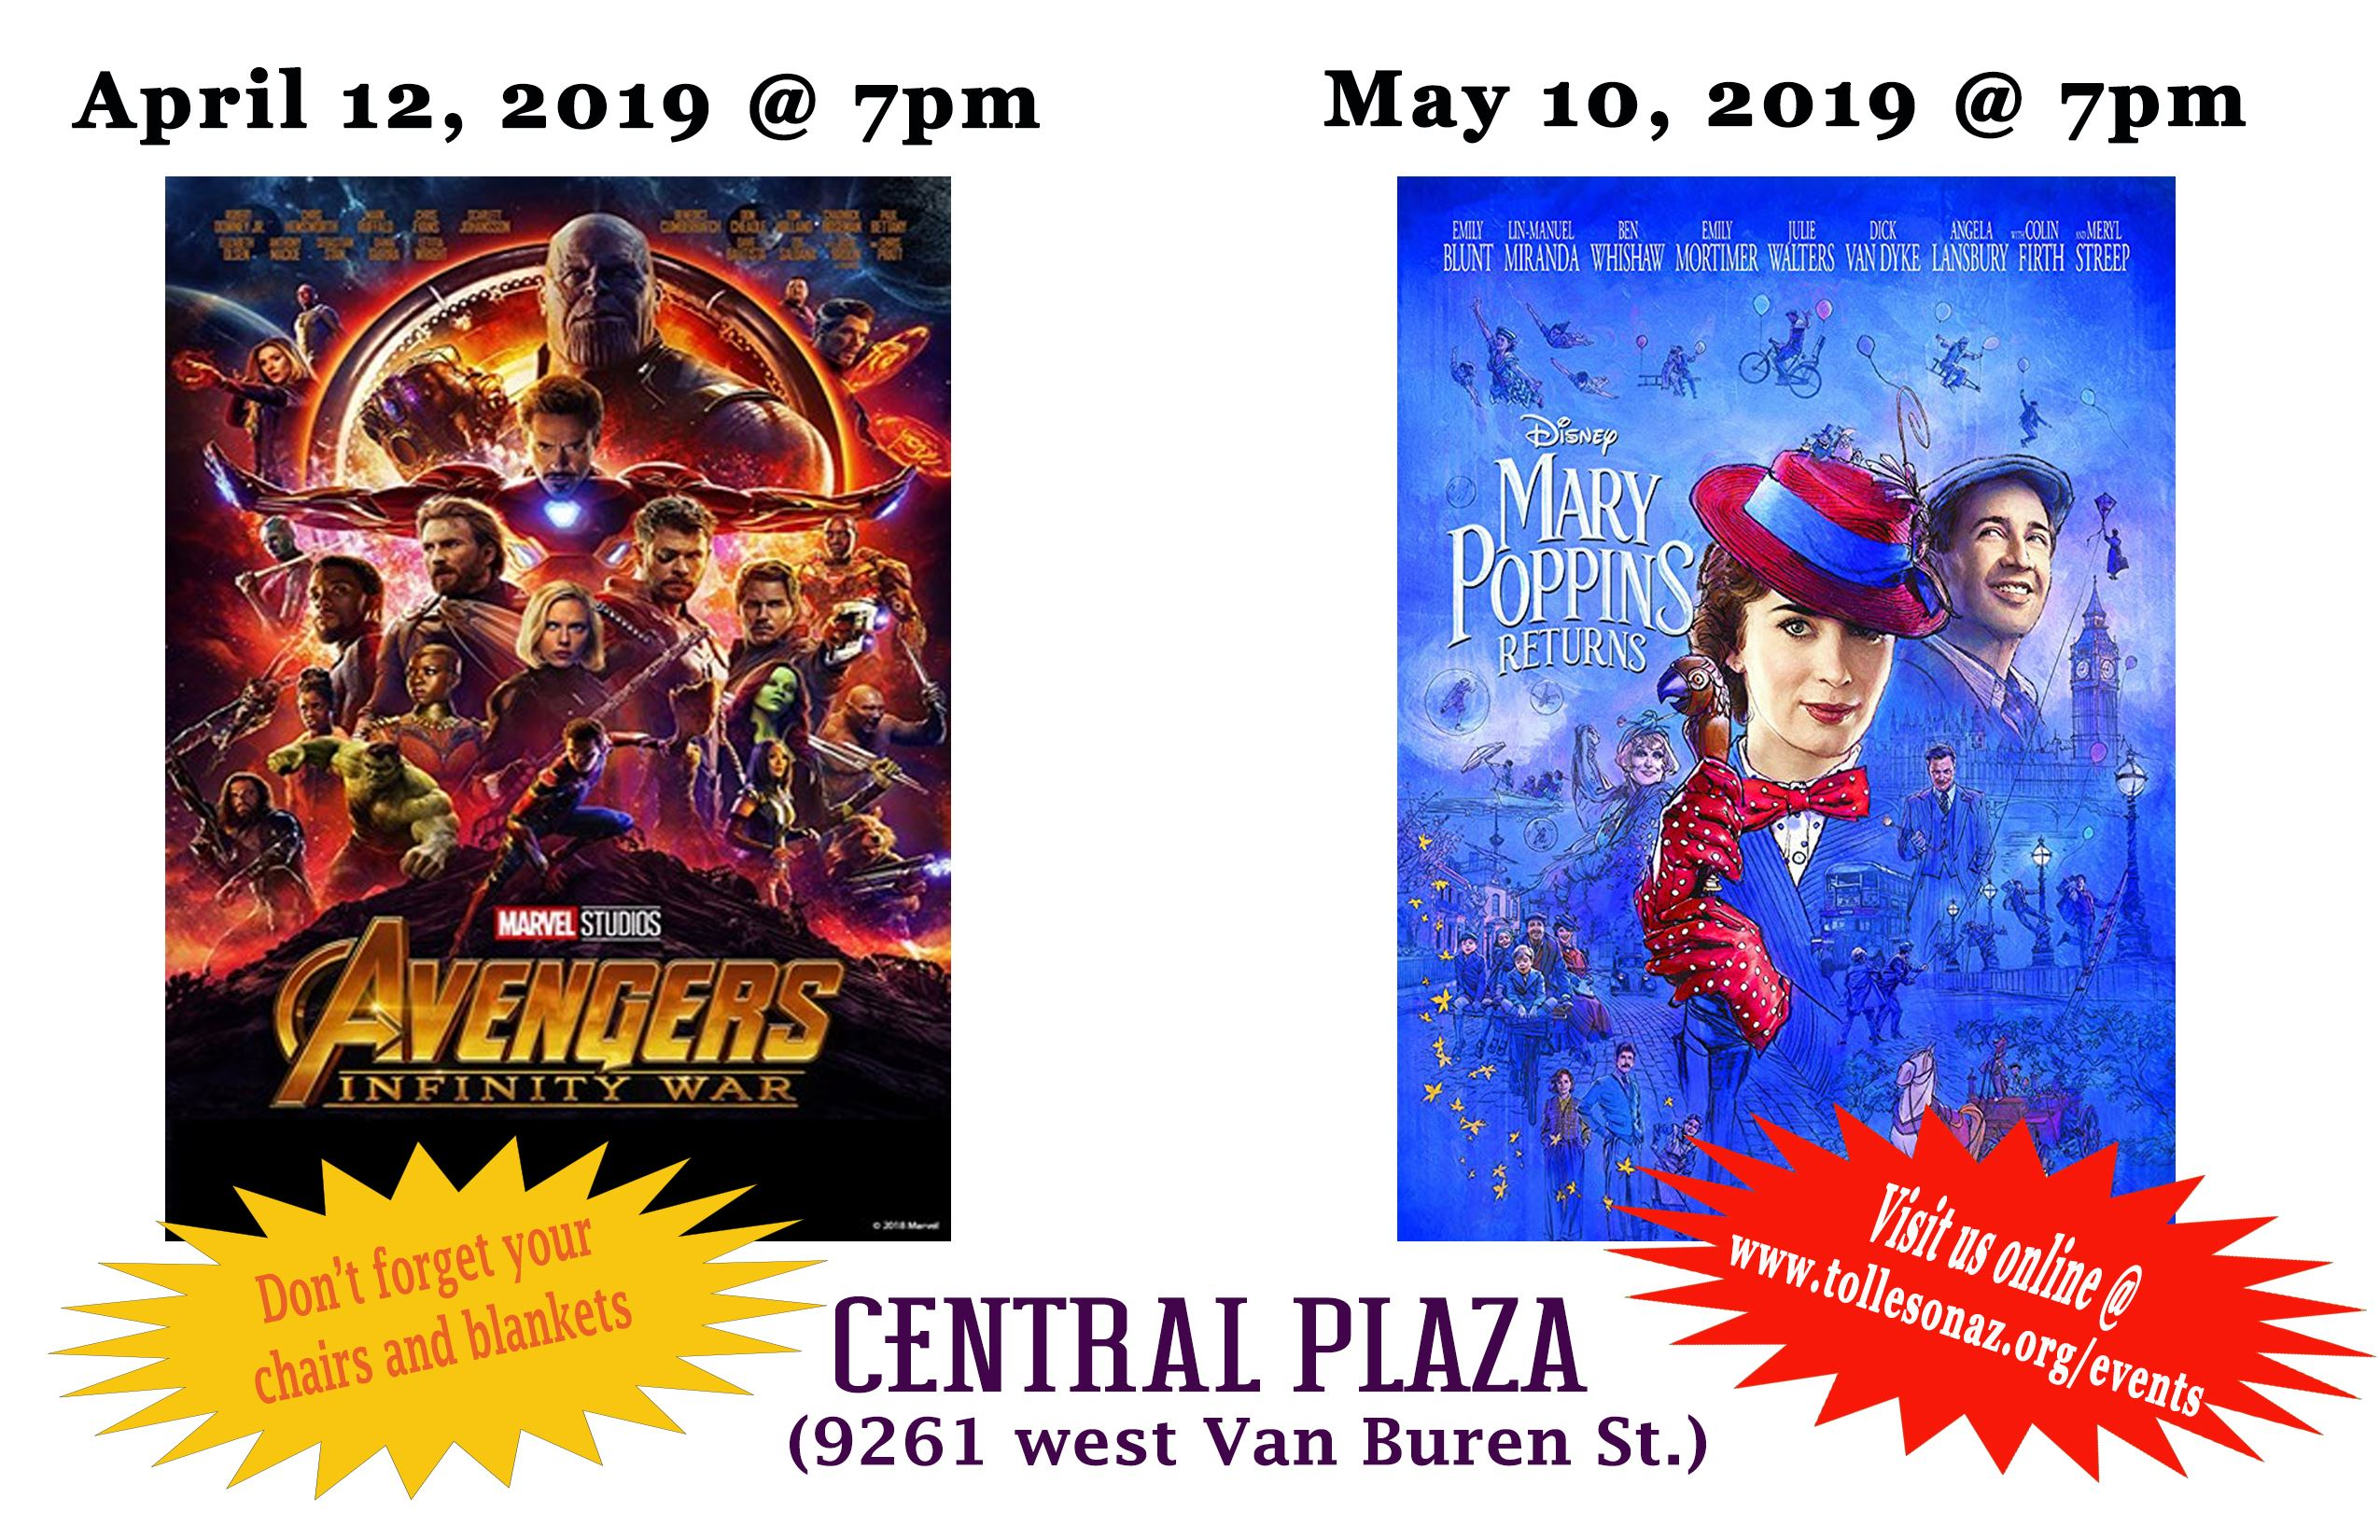 April and May 2019 - Movies at Central Plaza